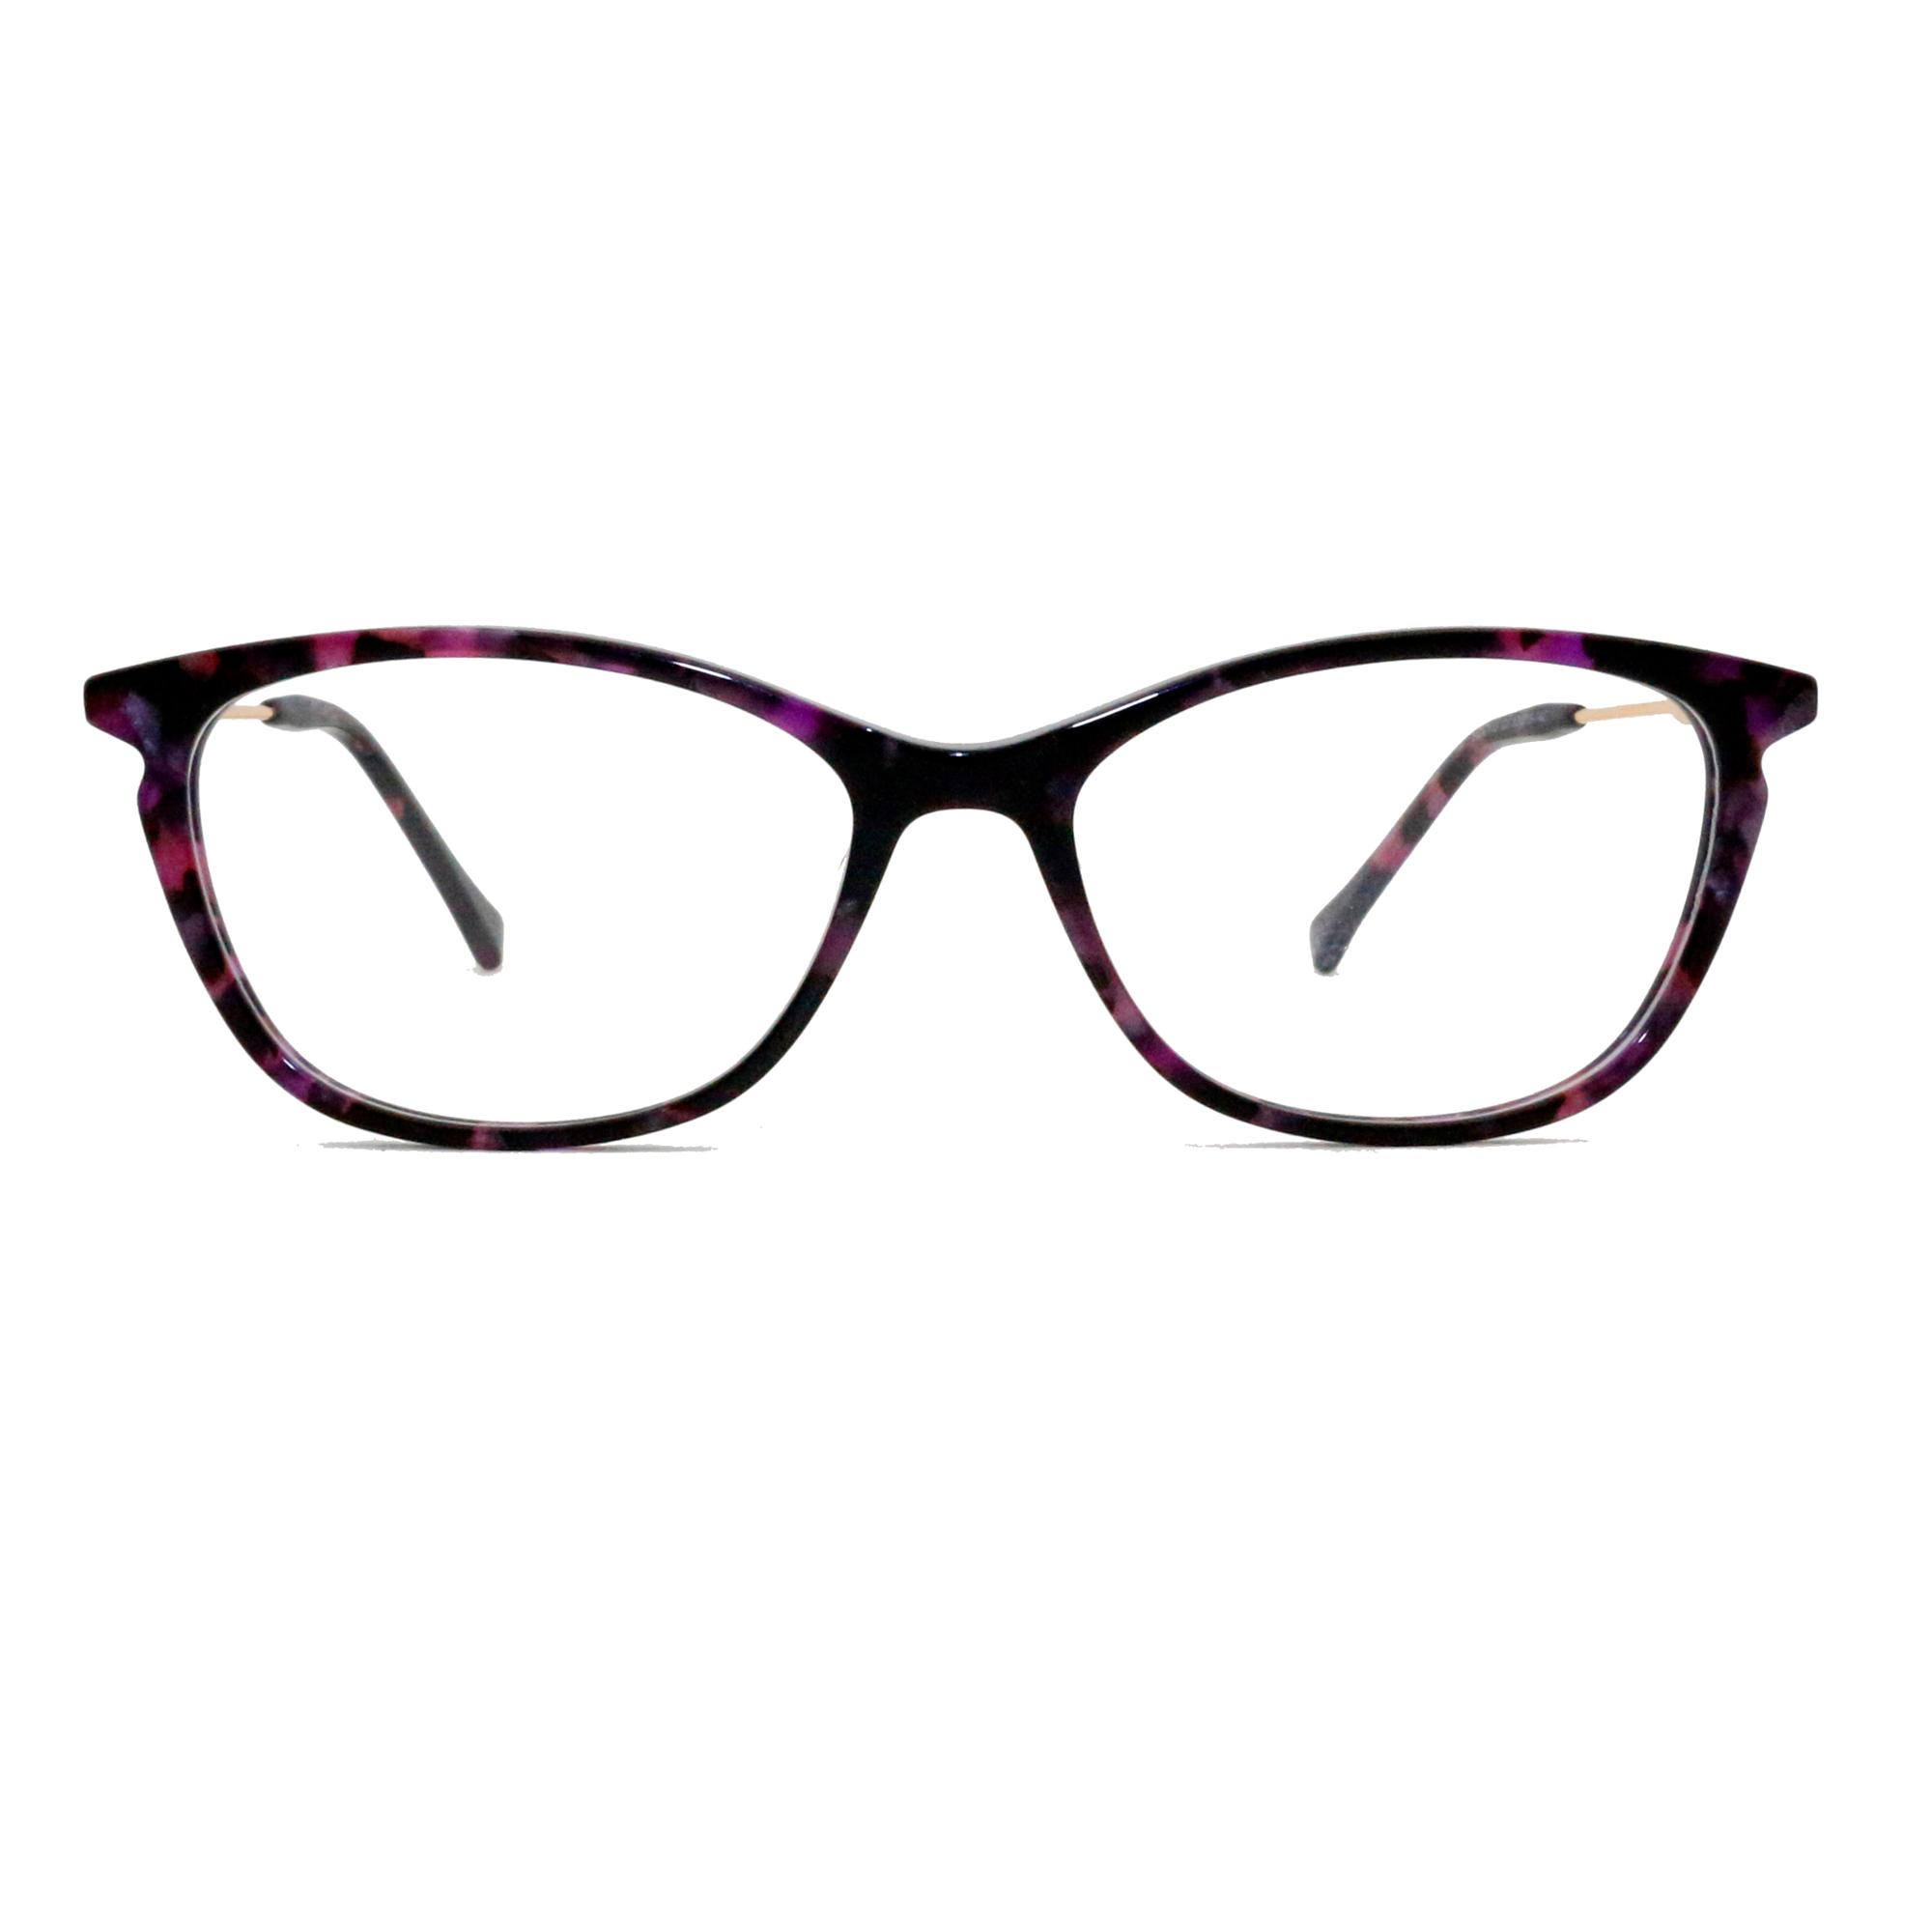 3566118a3dc1 2018 hot sale china wholesale Fashion Optical aetate Metal Eyeglasses frame  in stock no MOQ in